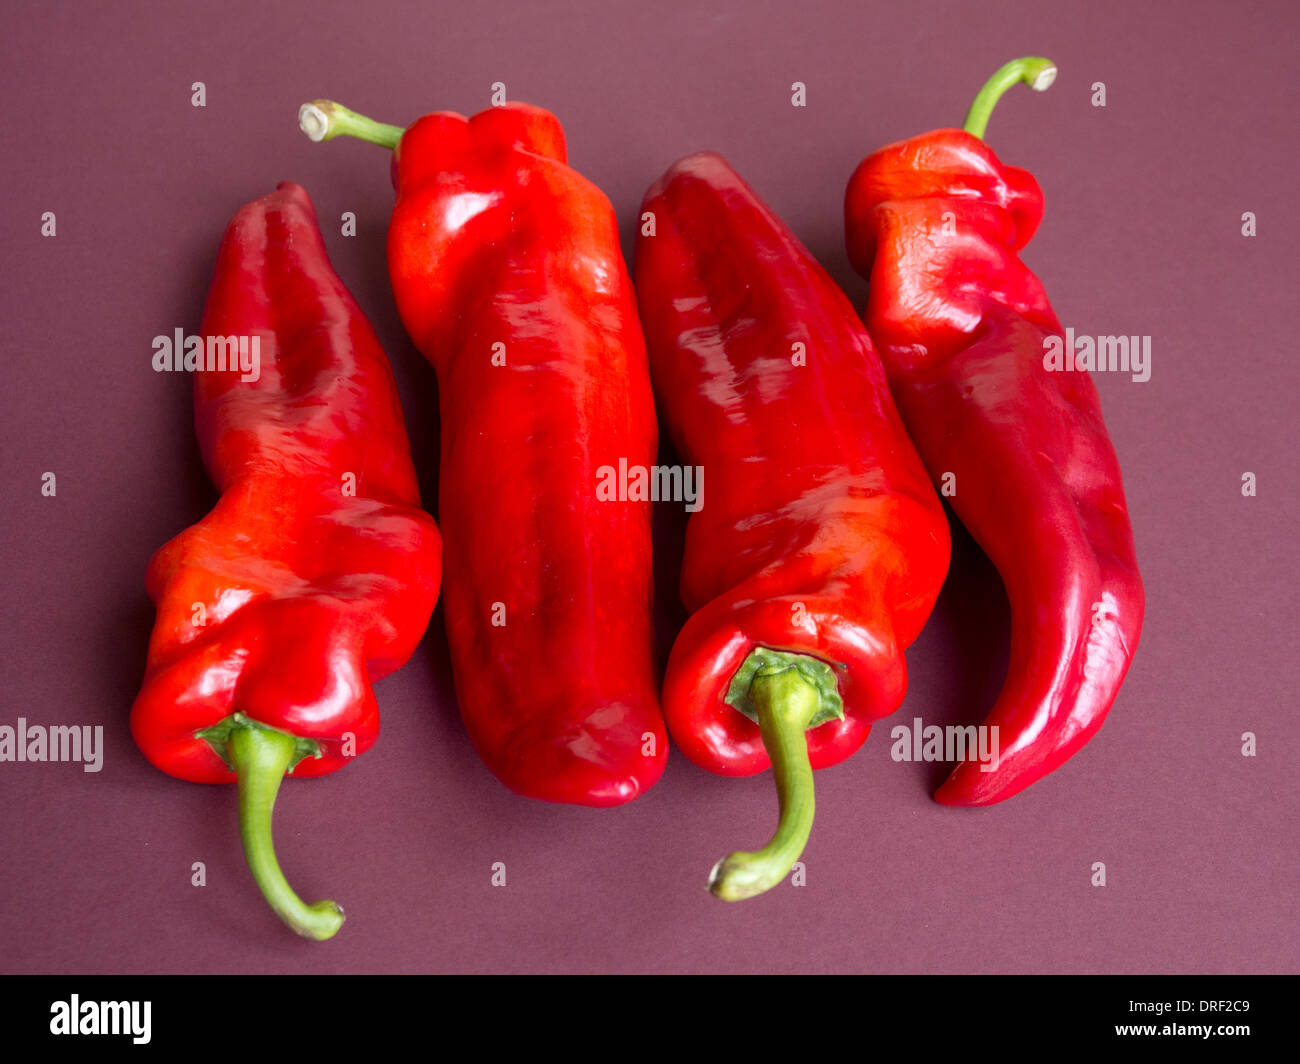 a still life of four shiny red capsicum peppers 'head-to-tail' on a plain maroon background - Stock Image